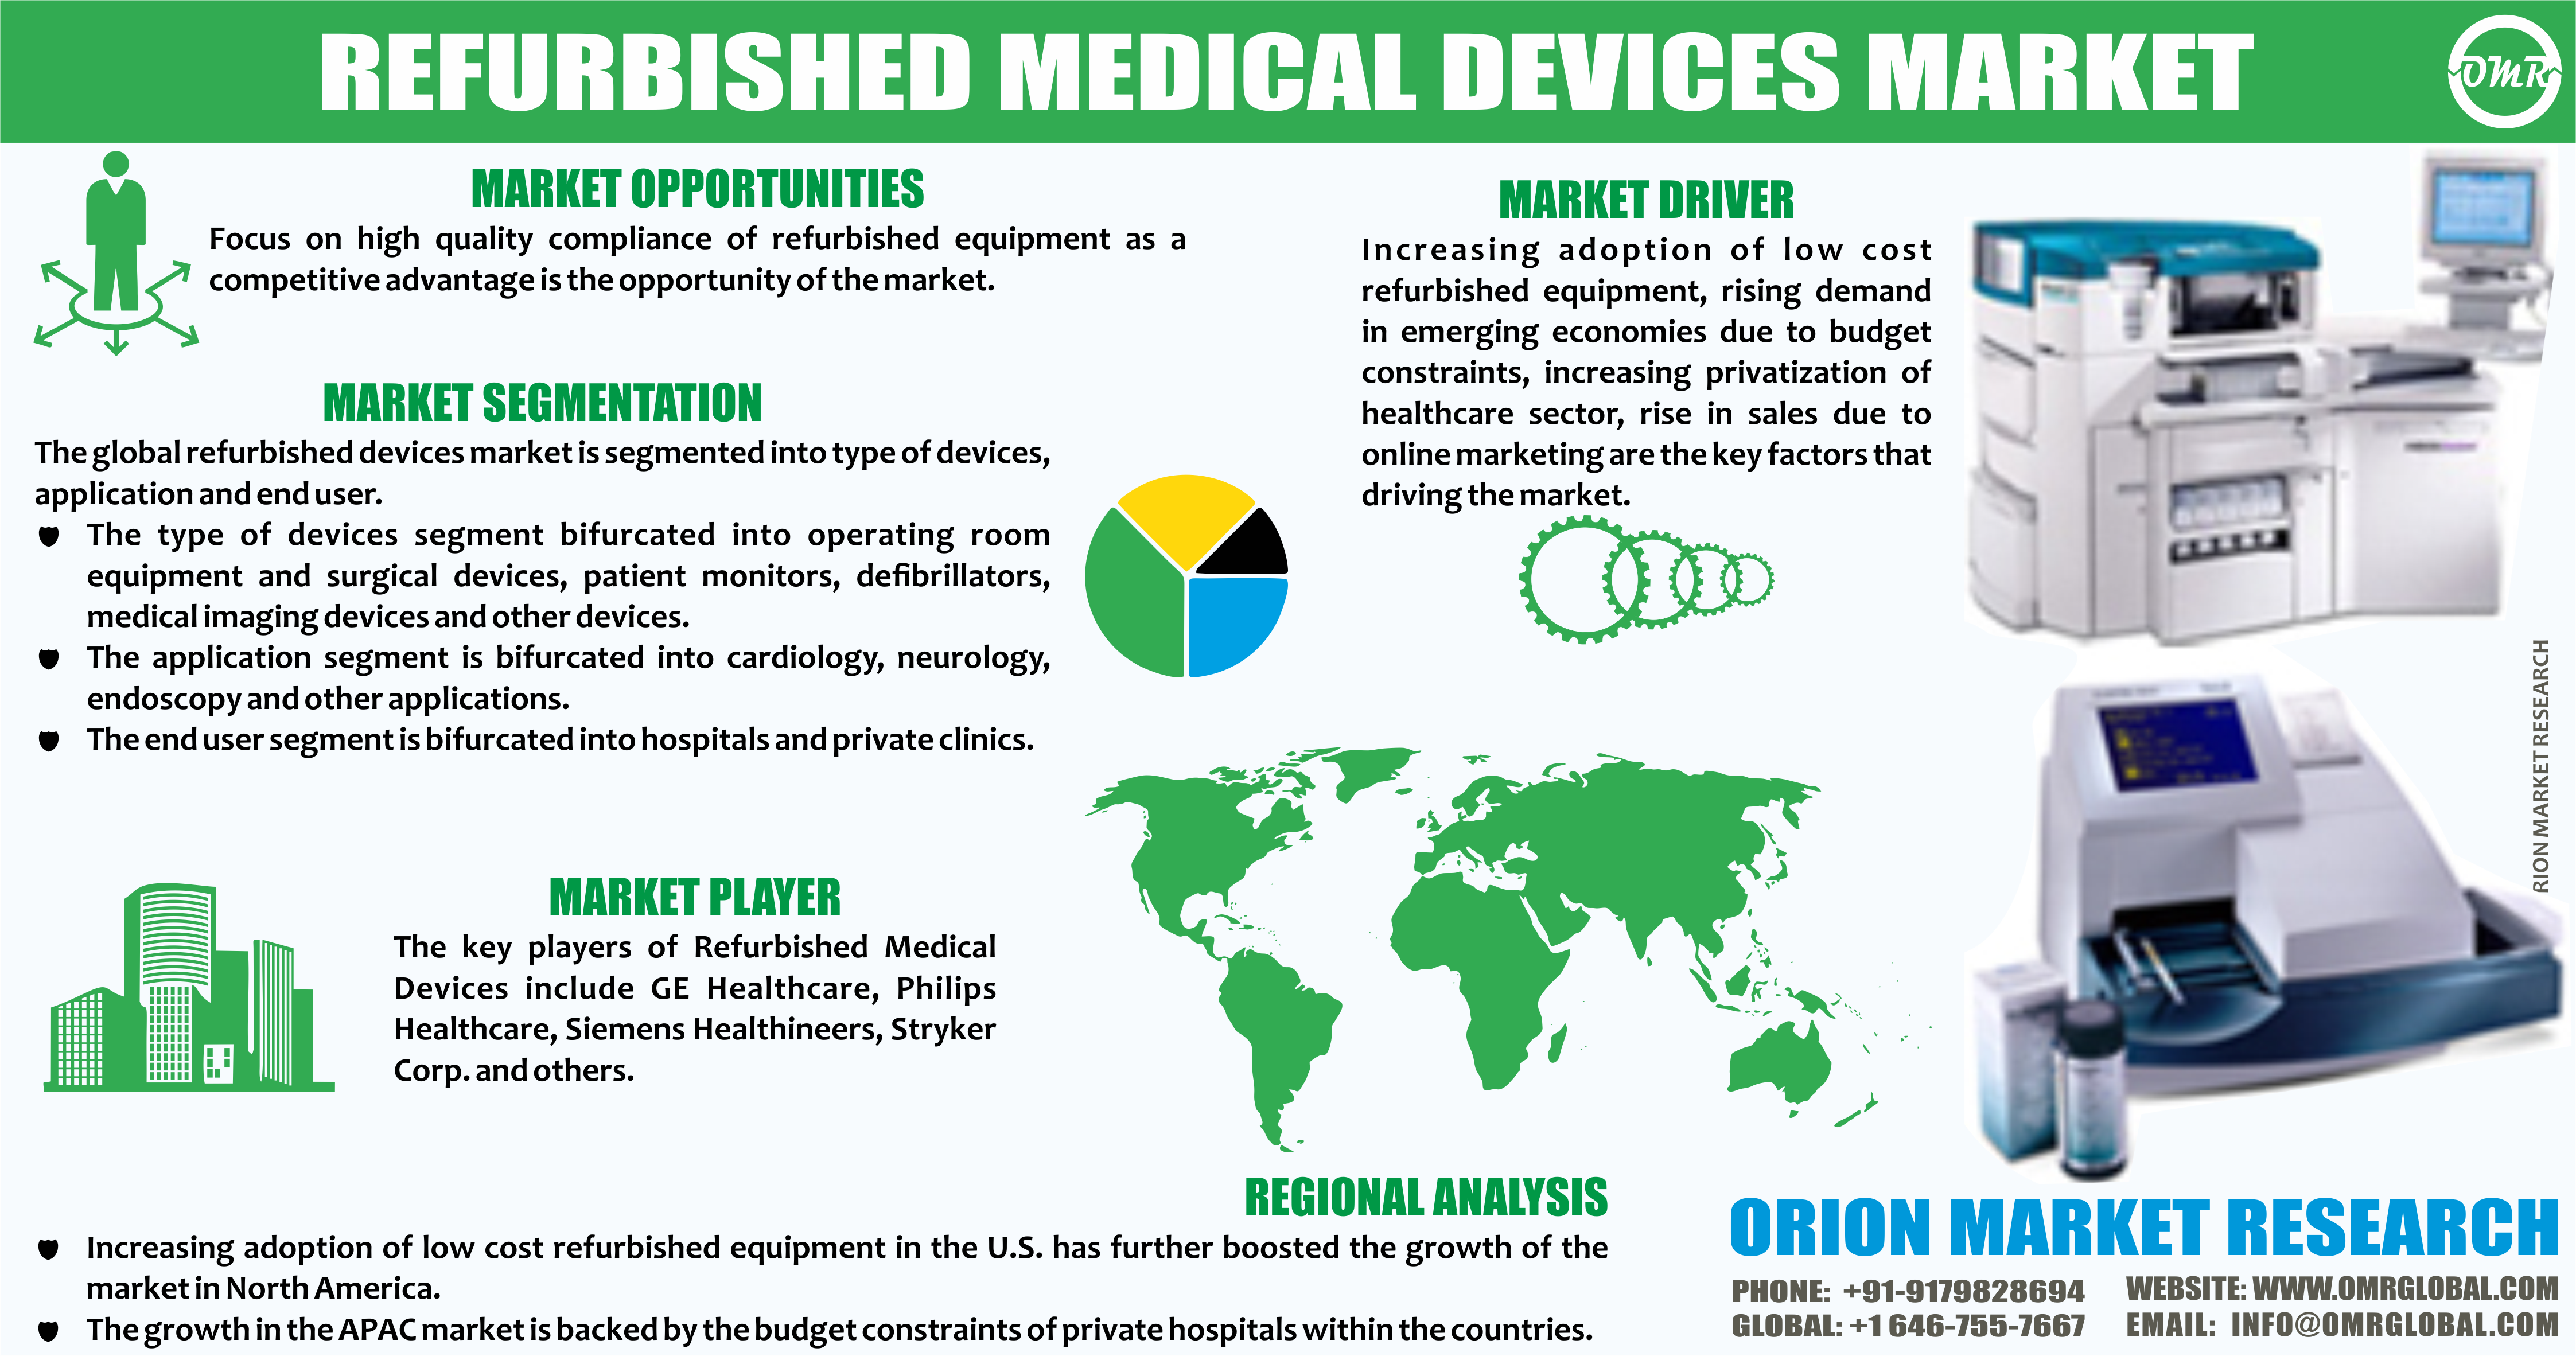 Refurbished Medical Devices Market Size, Share Medical